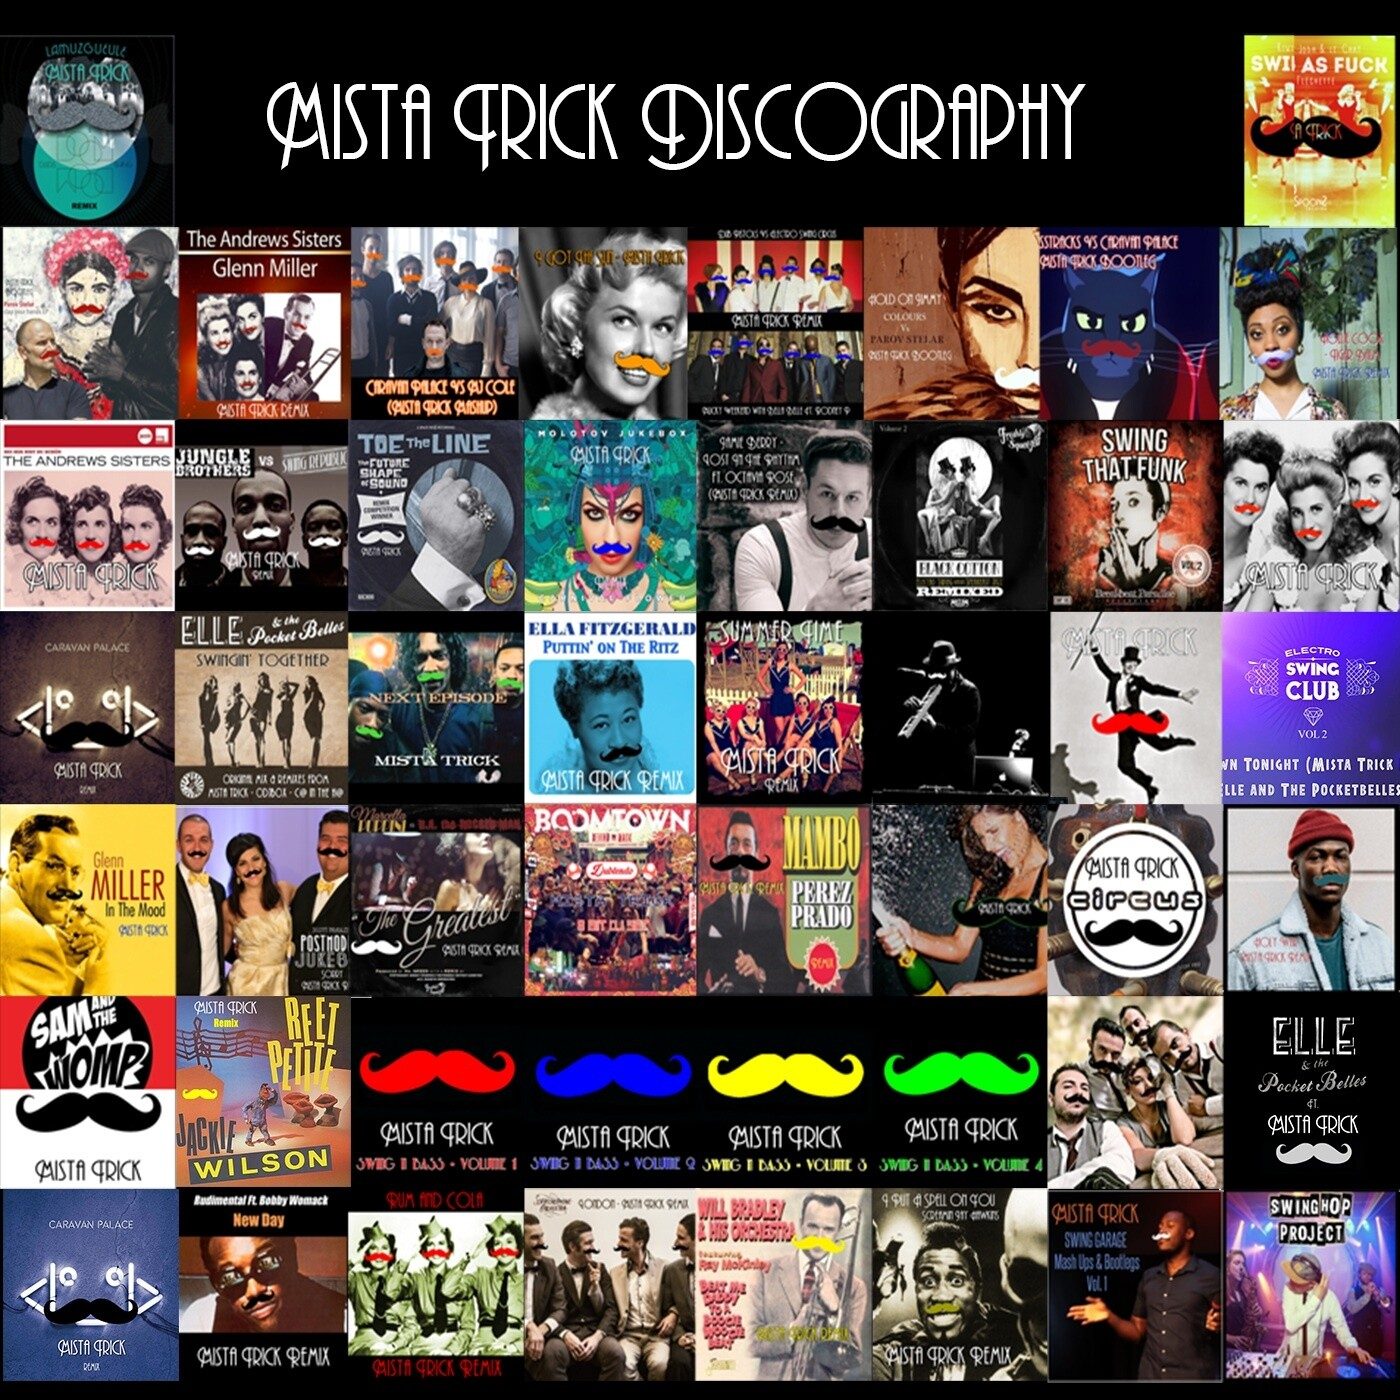 Mista Trick Discography